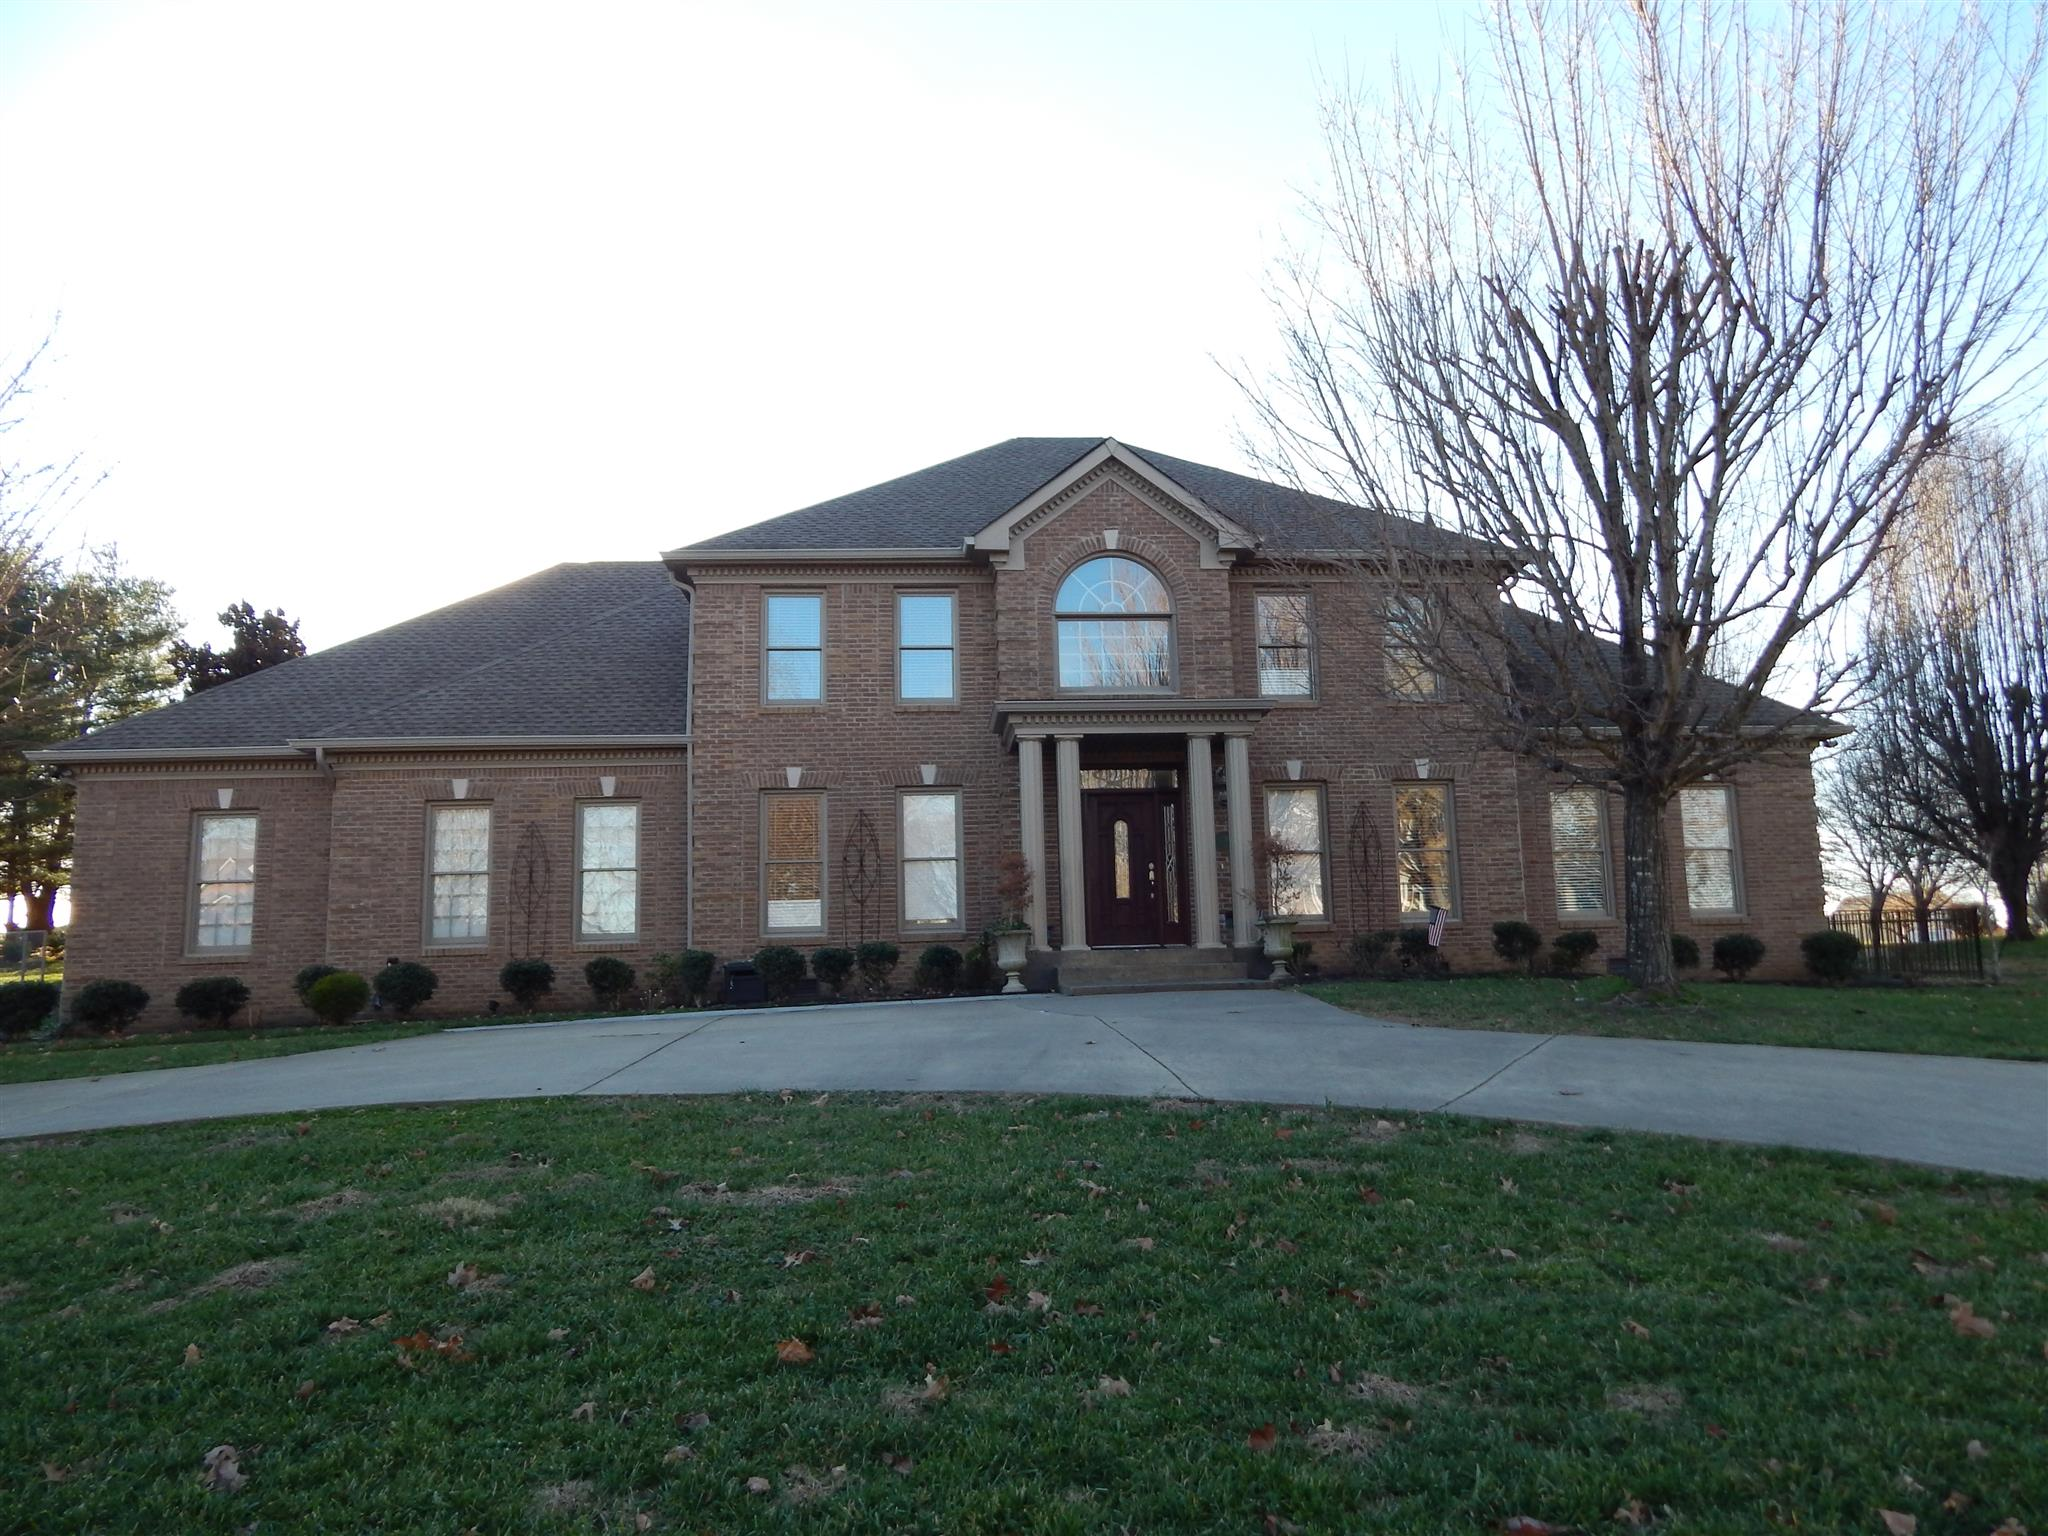 530 Pond Apple Rd, Clarksville in Montgomery County County, TN 37043 Home for Sale